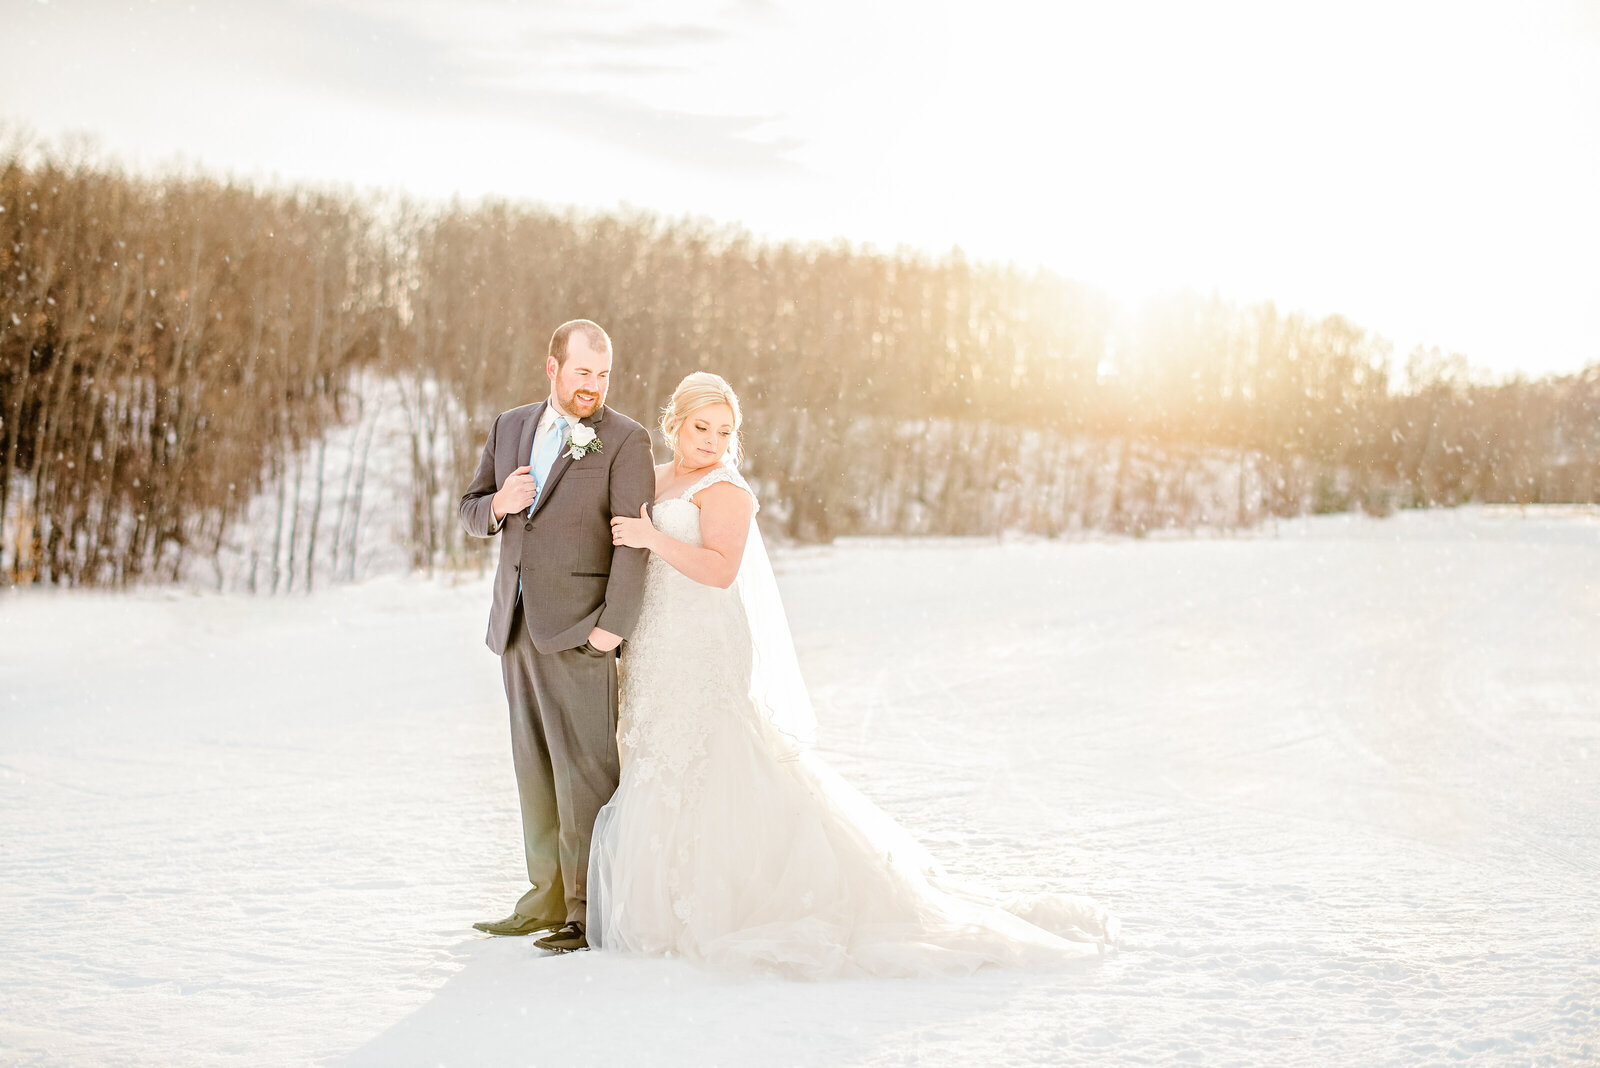 Bride and Groom on their winter wedding